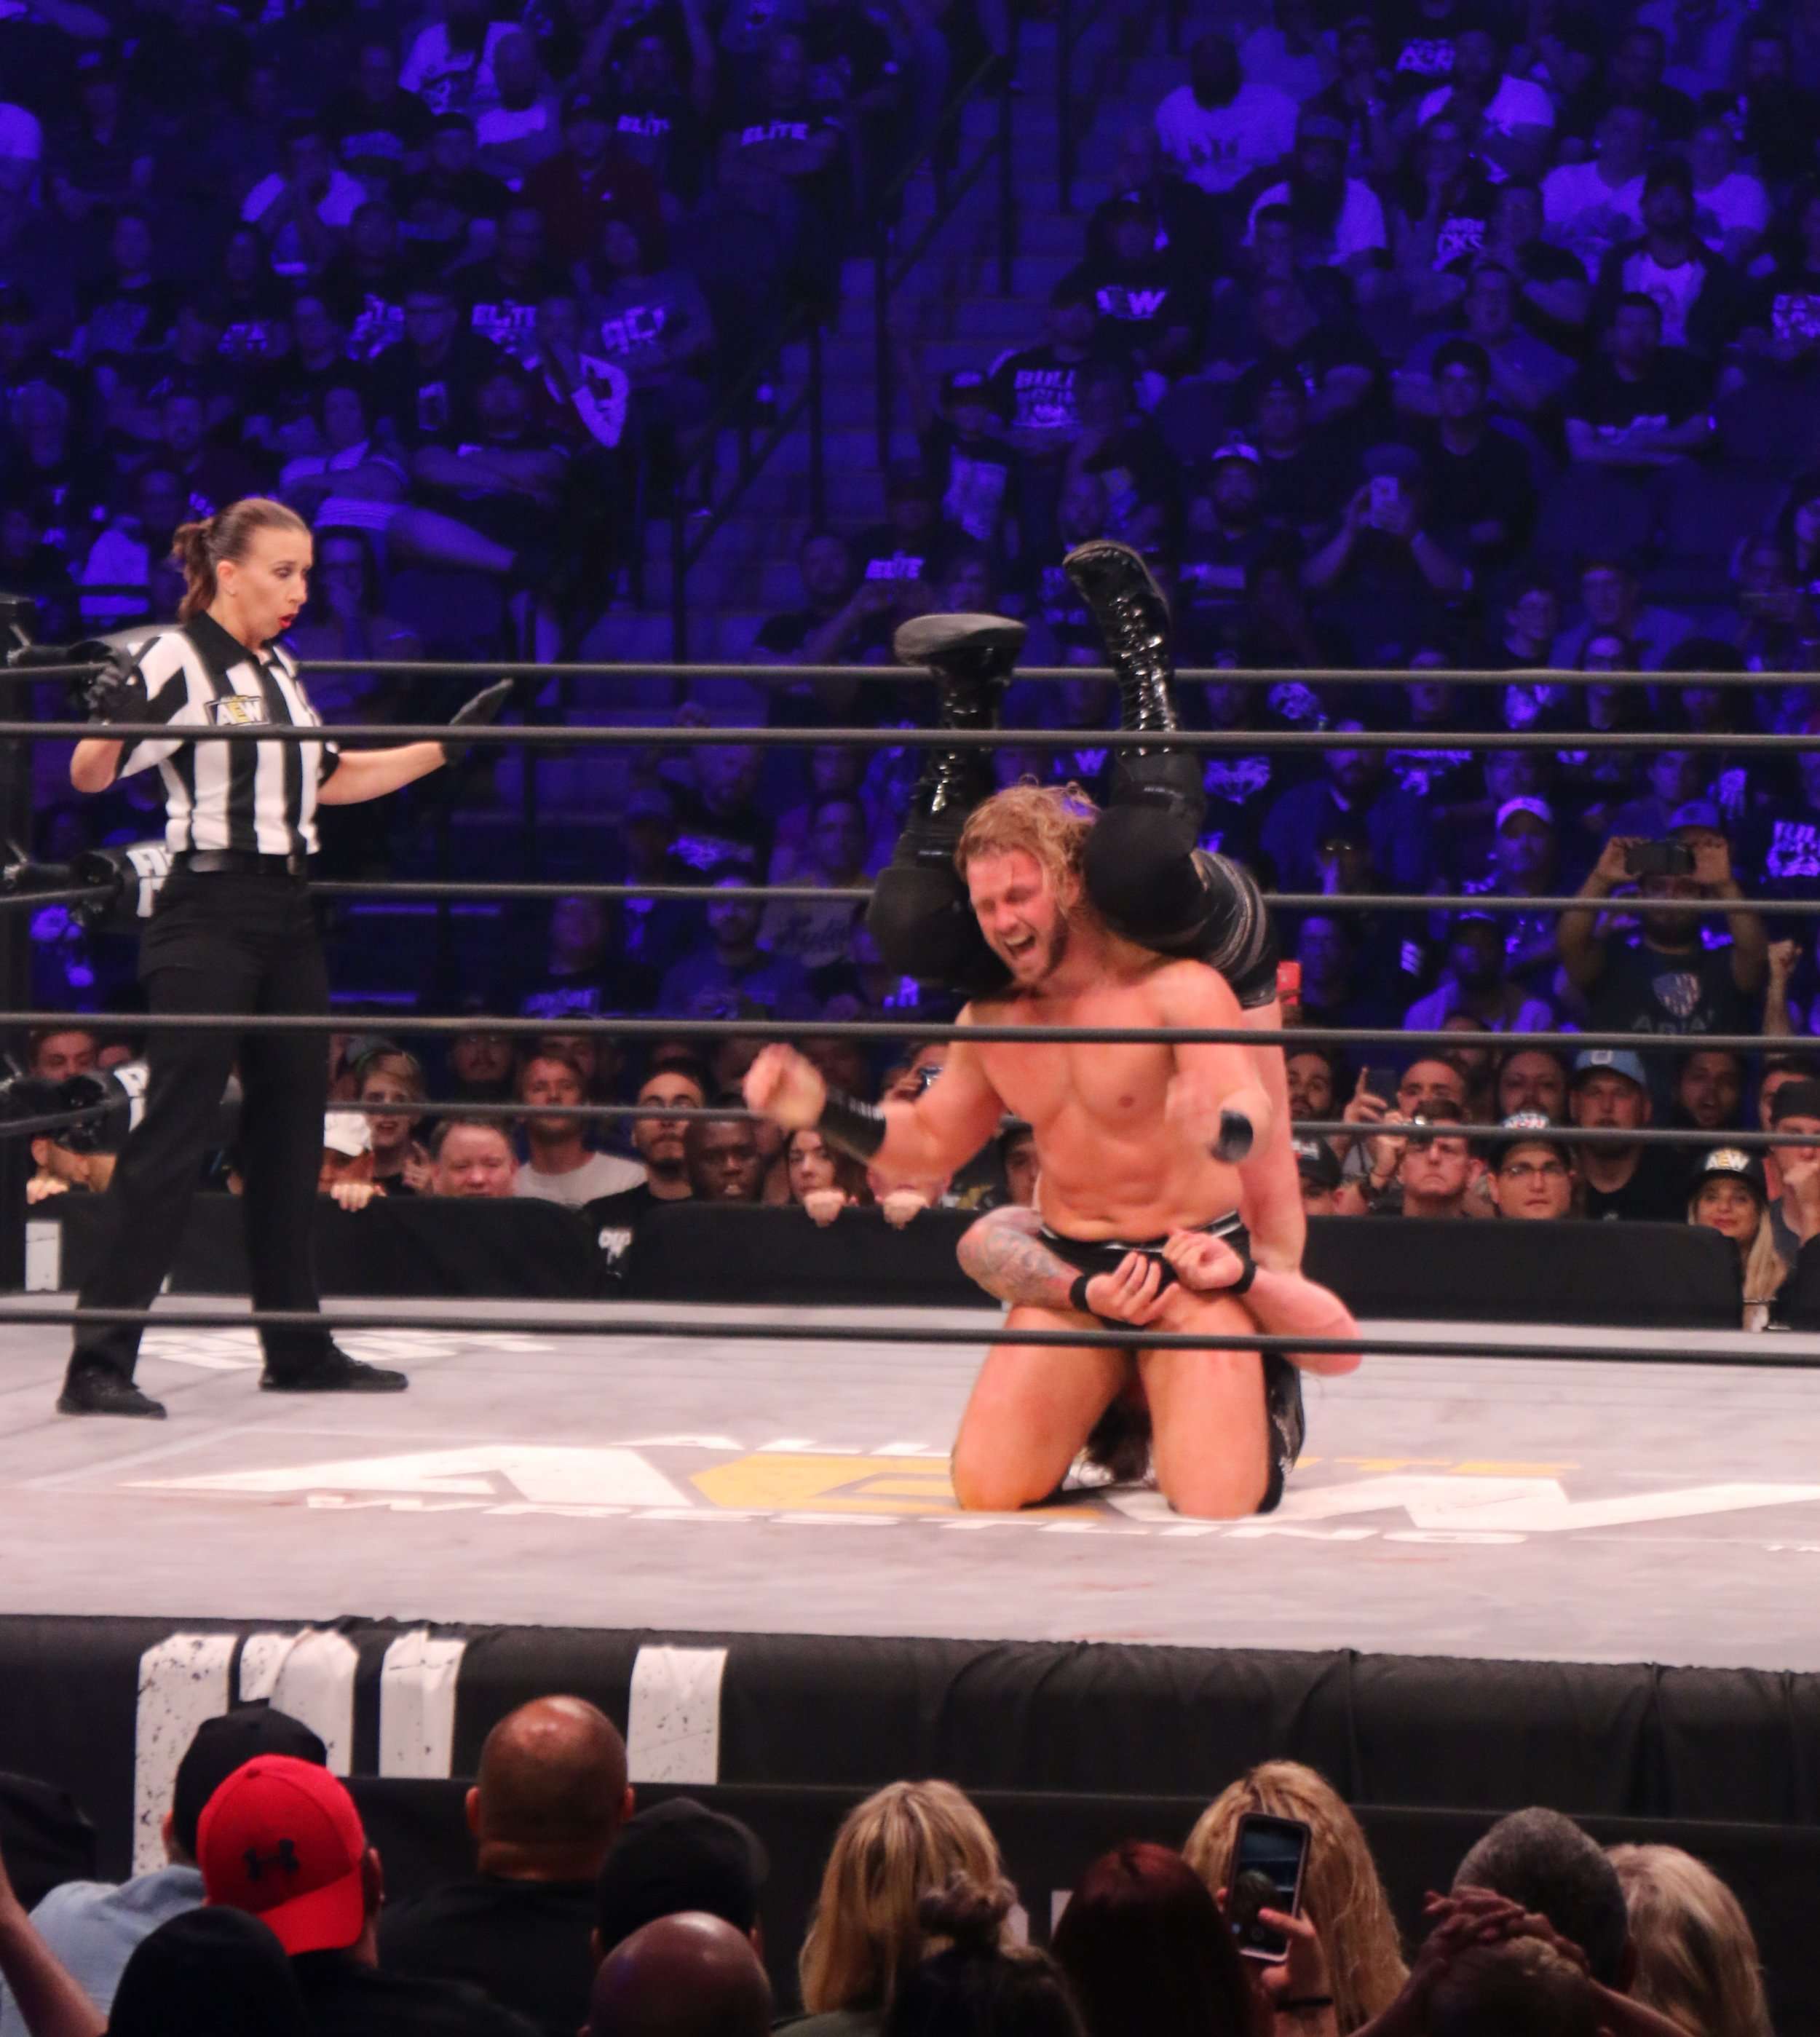 Hangman Page hits the Dead Eye on Chris Jericho, but Jericho kicked out a 2.